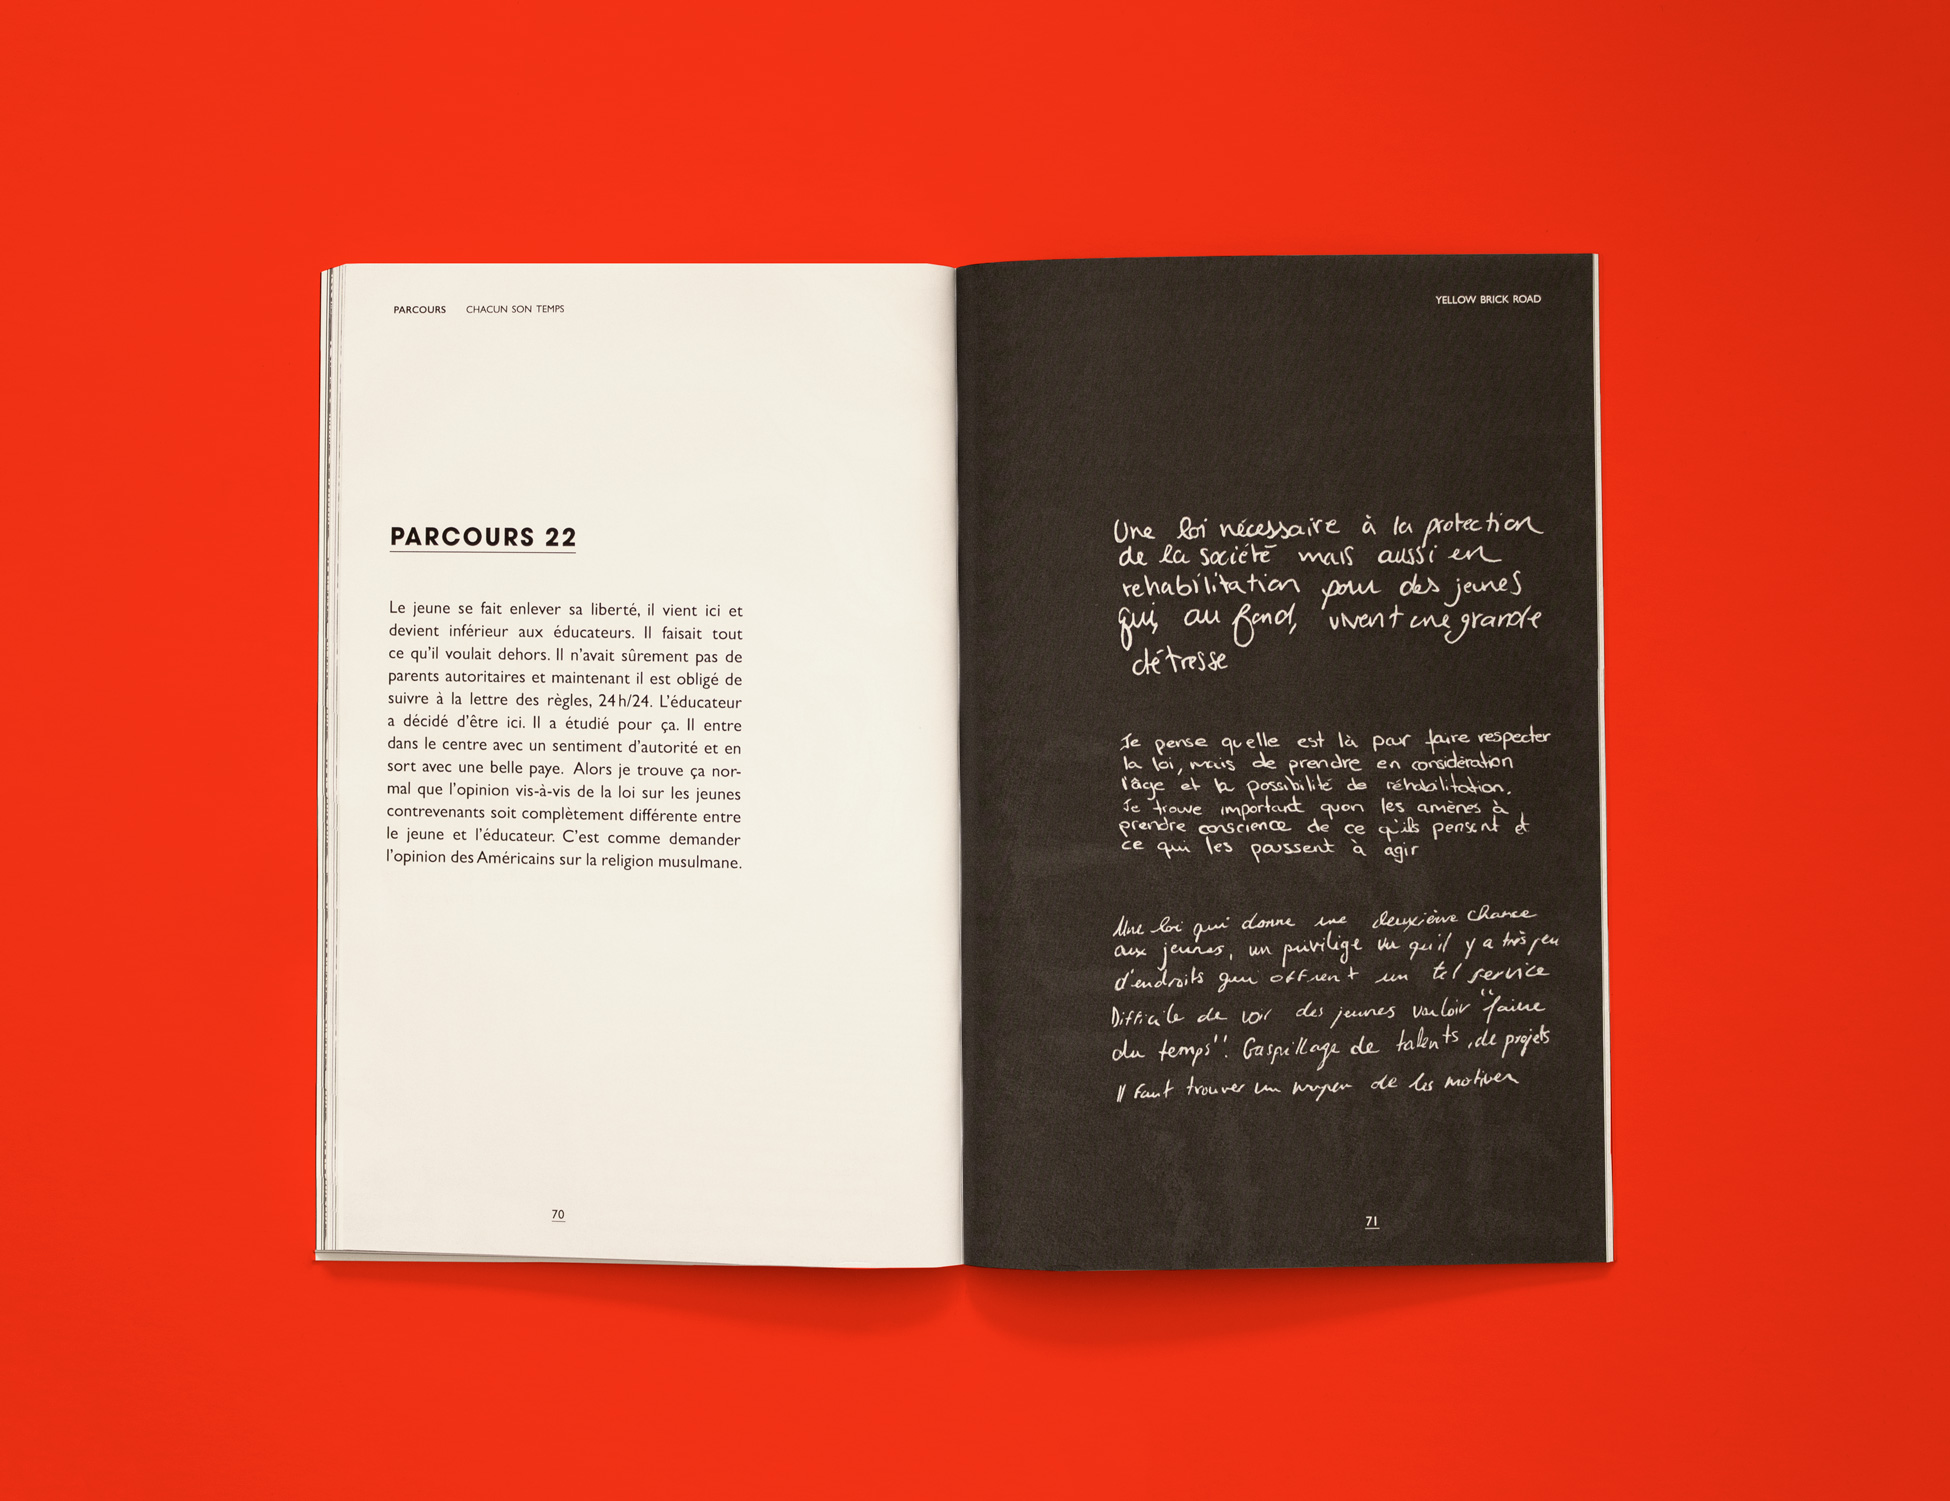 Spread from Parcous: Chacun son temps. The book is opened on a short prose poem (left page) and a series of handwritten statements (right page) by young people in Montreal's youth center Cité des Prairies.